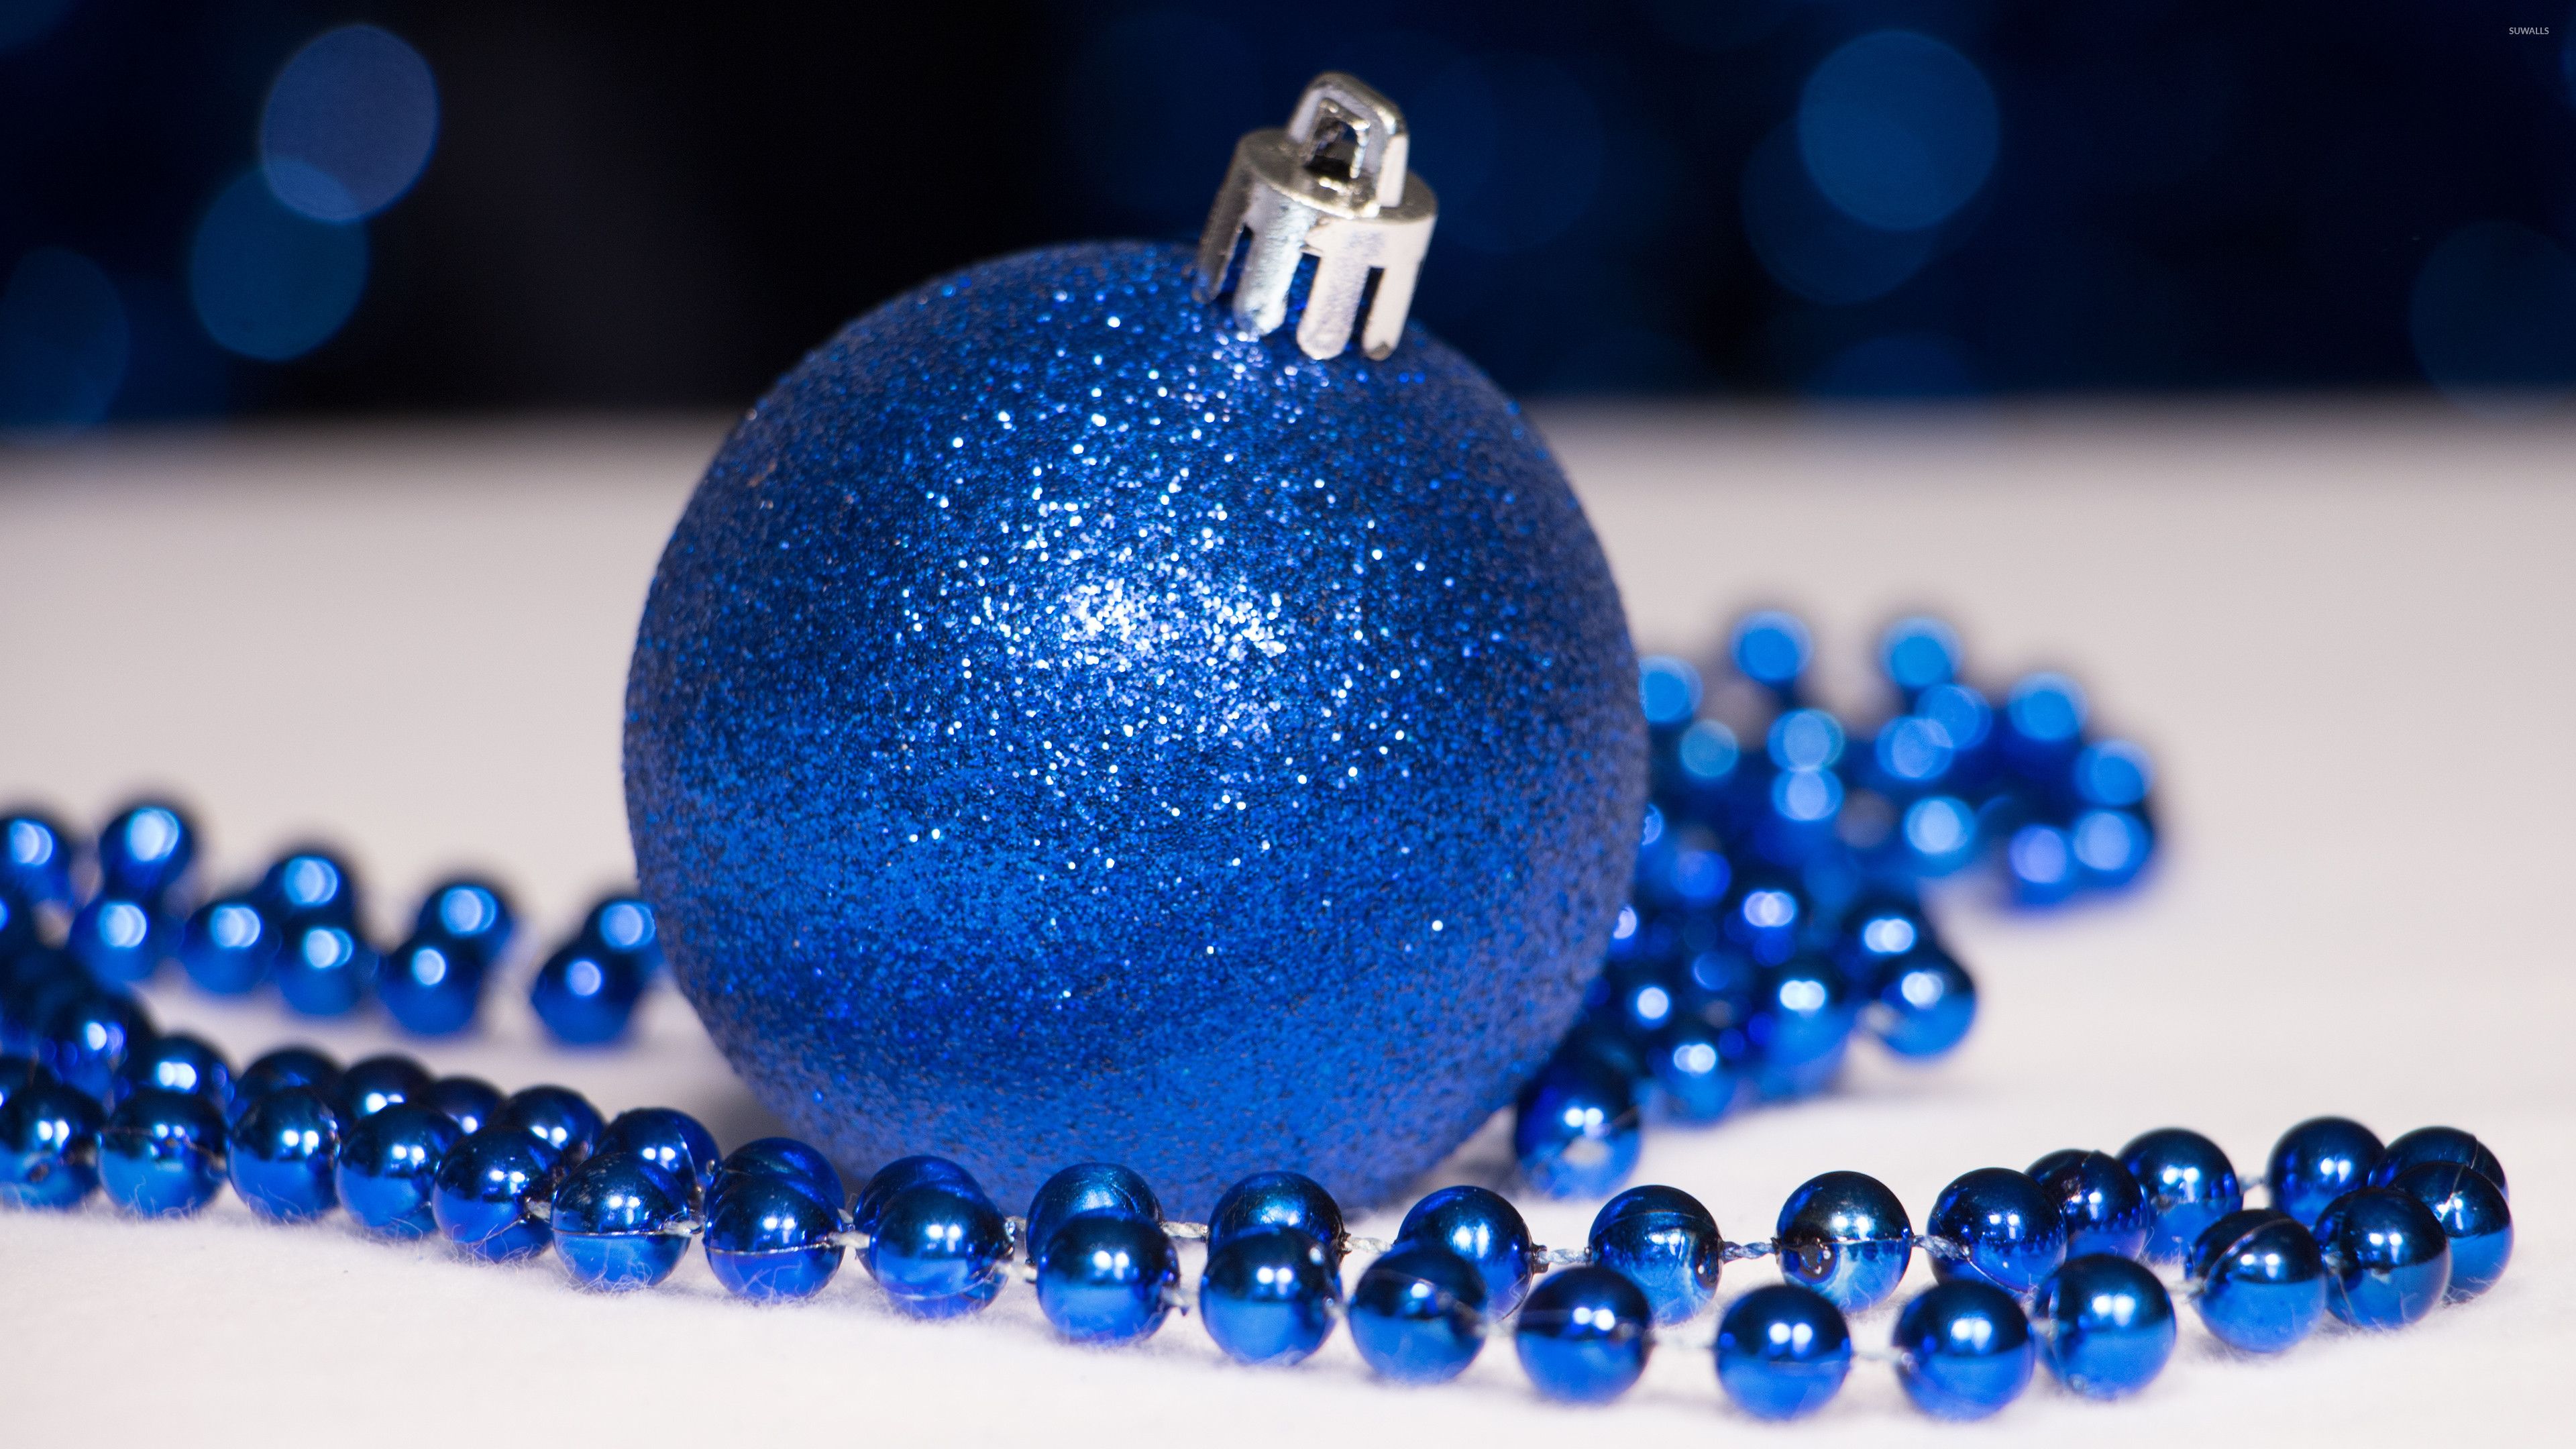 Blue Christmas Wallpaper ·① WallpaperTag